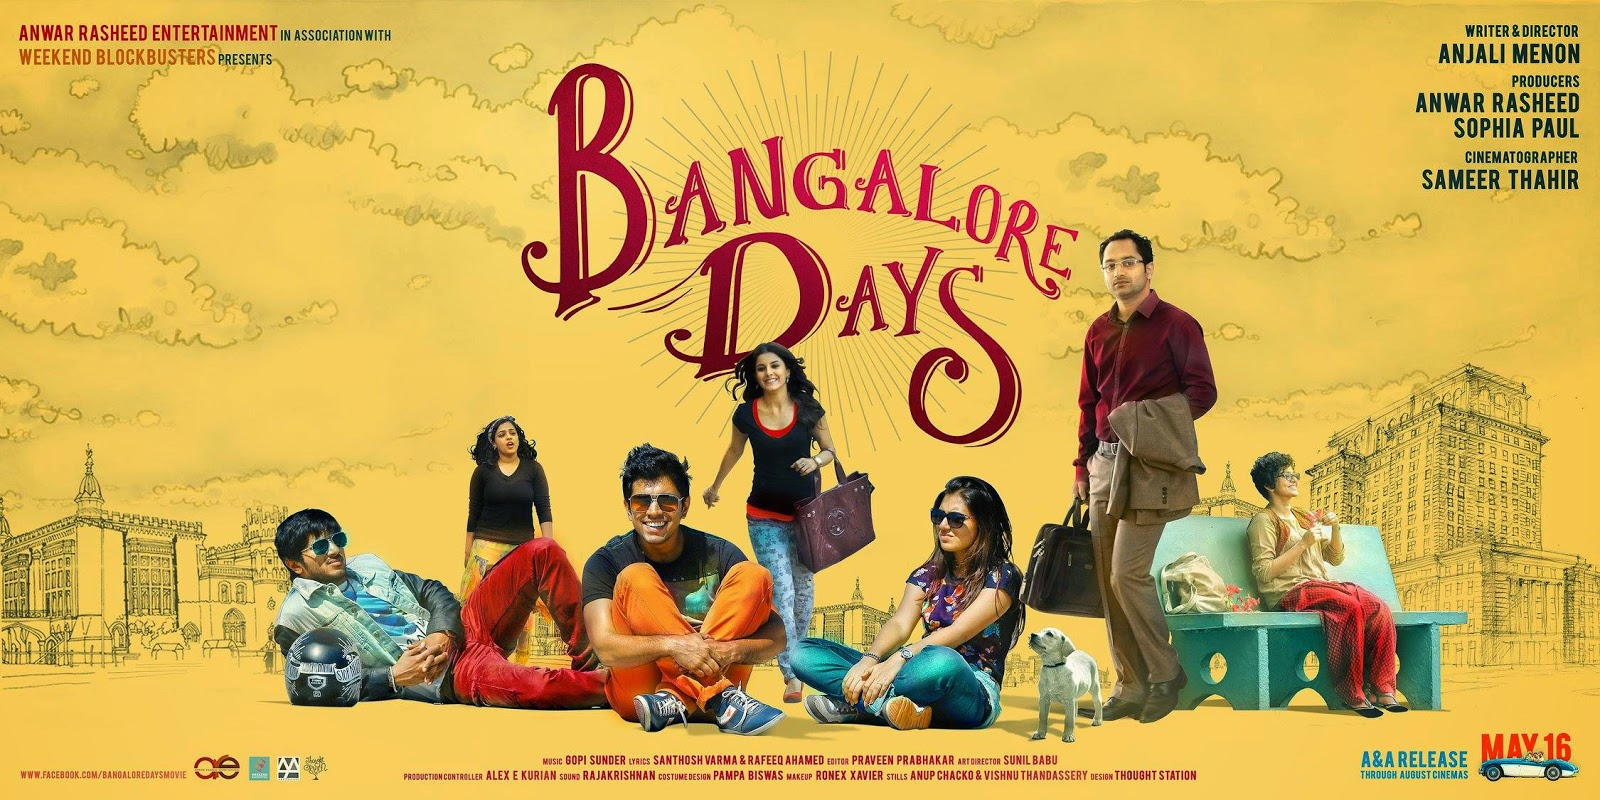 movie review of bangalore days in movieparadiso